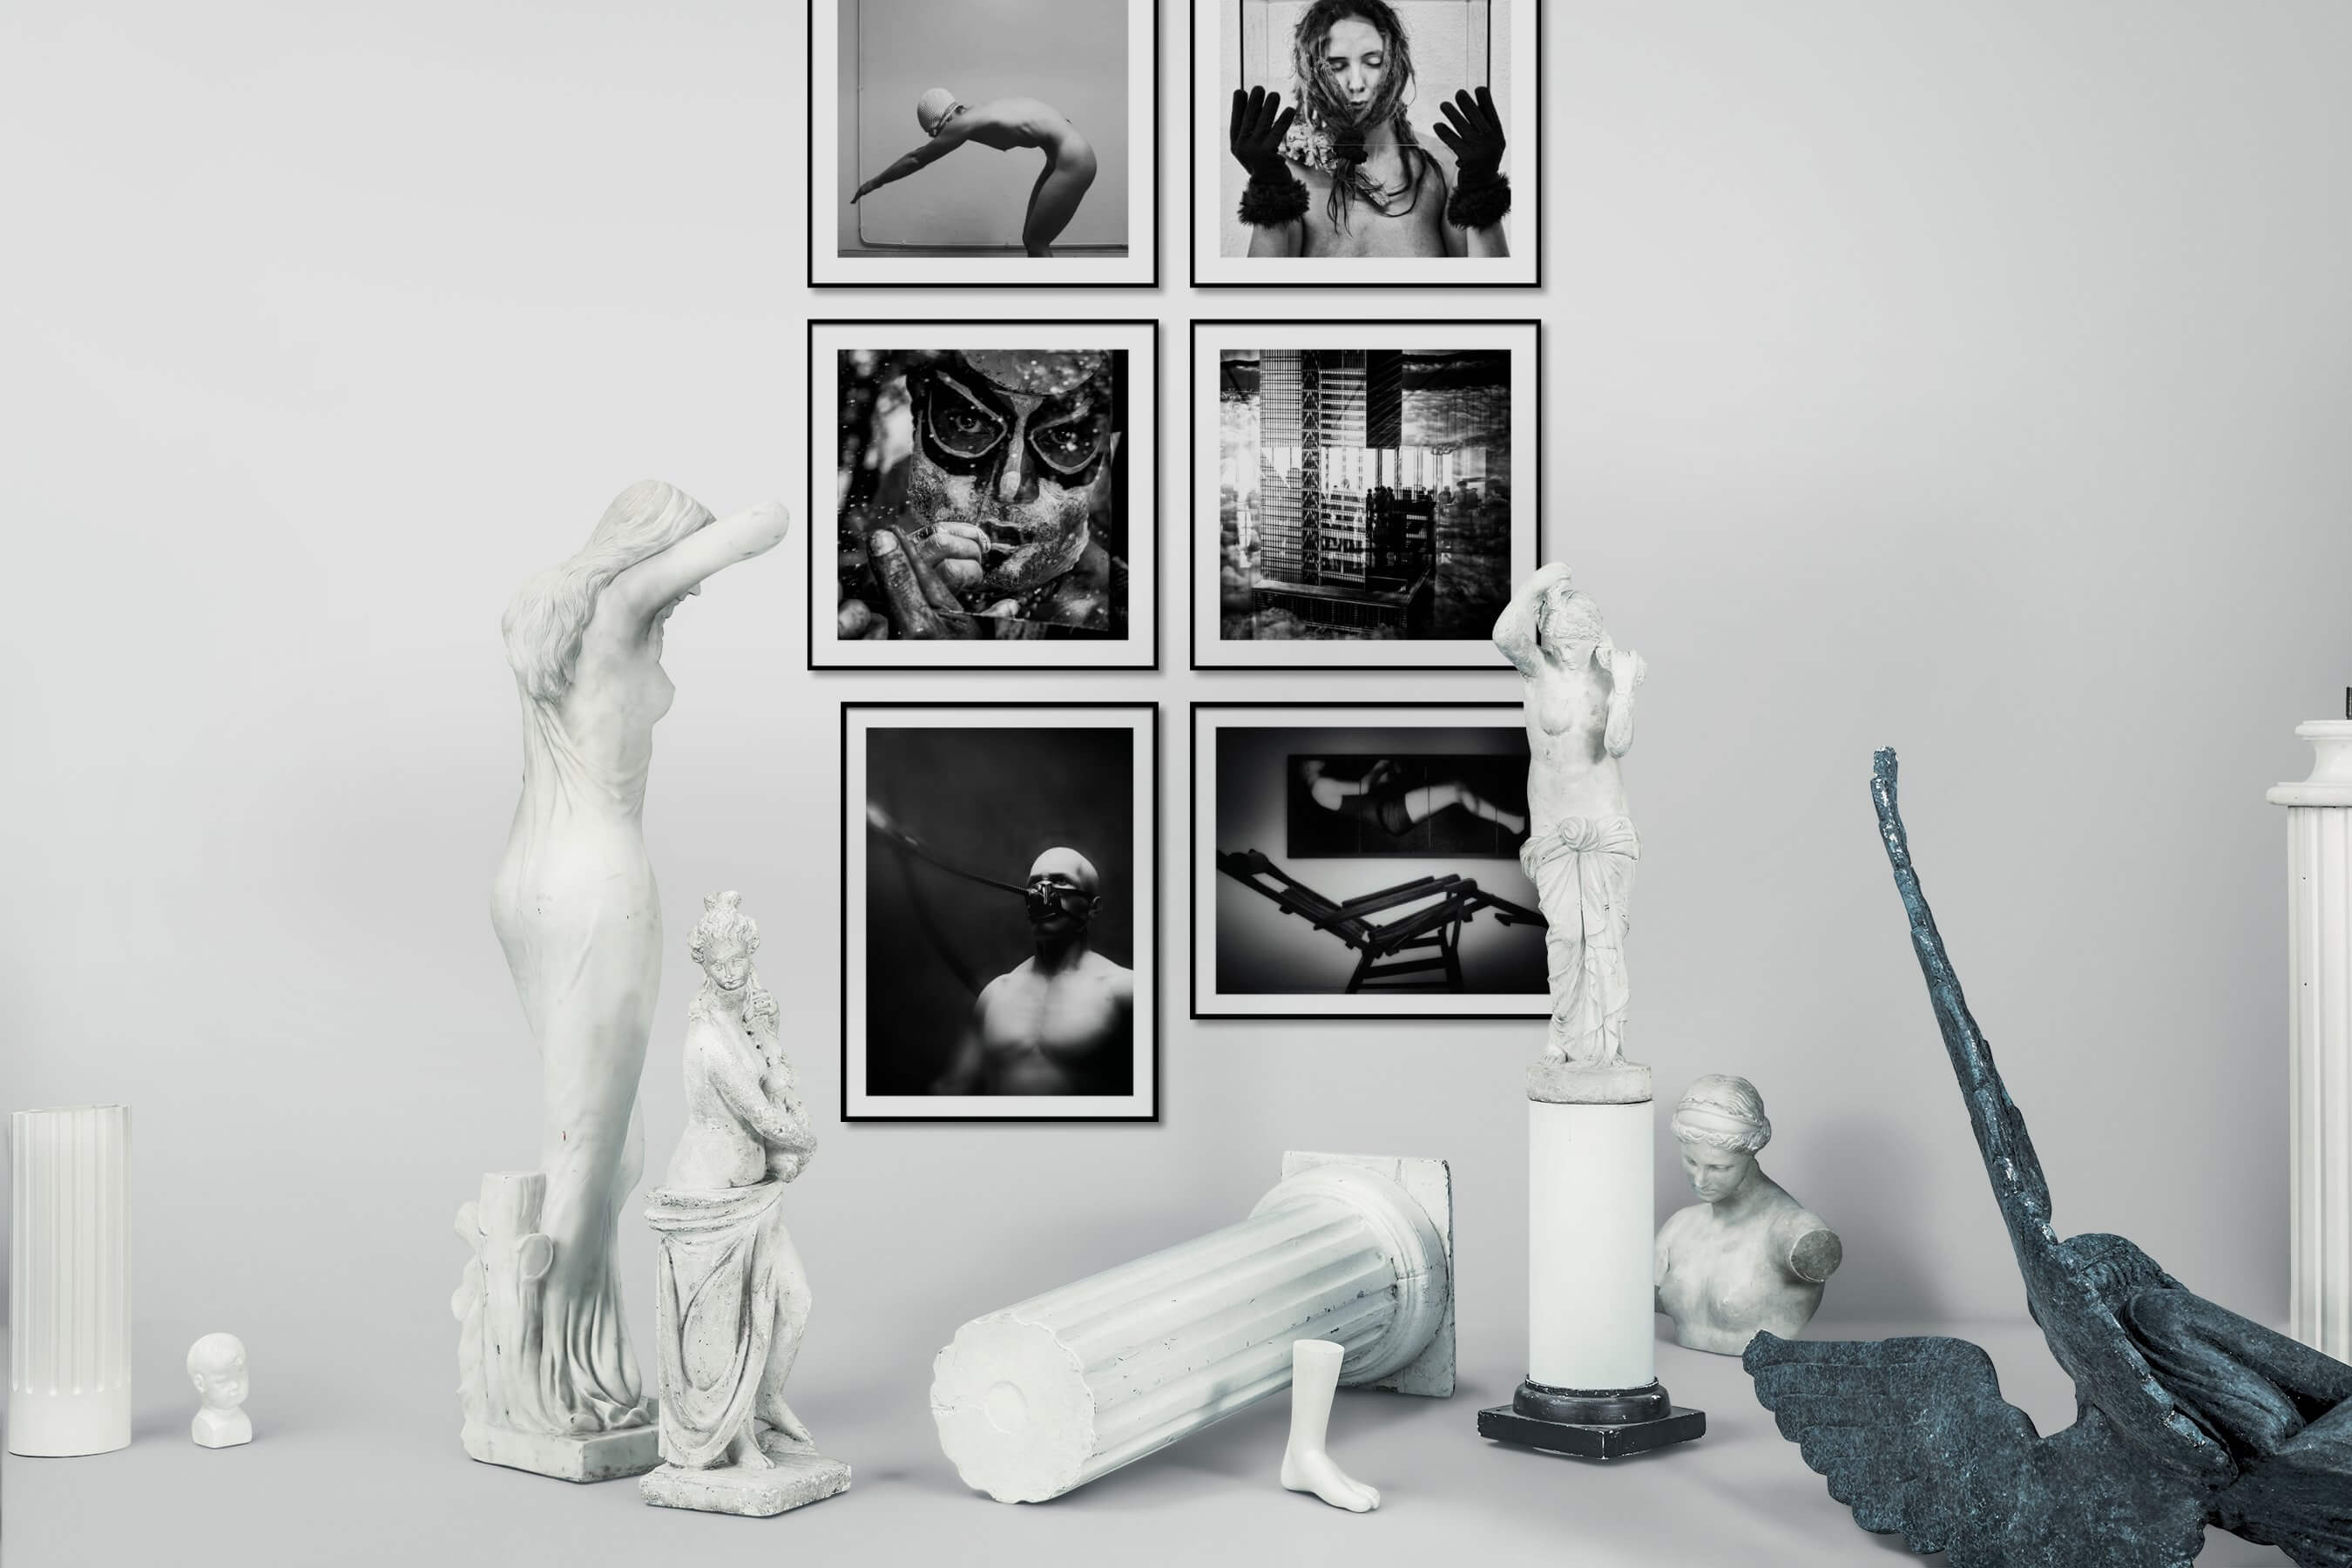 Gallery wall idea with six framed pictures arranged on a wall depicting Artsy, Black & White, For the Minimalist, and City Life